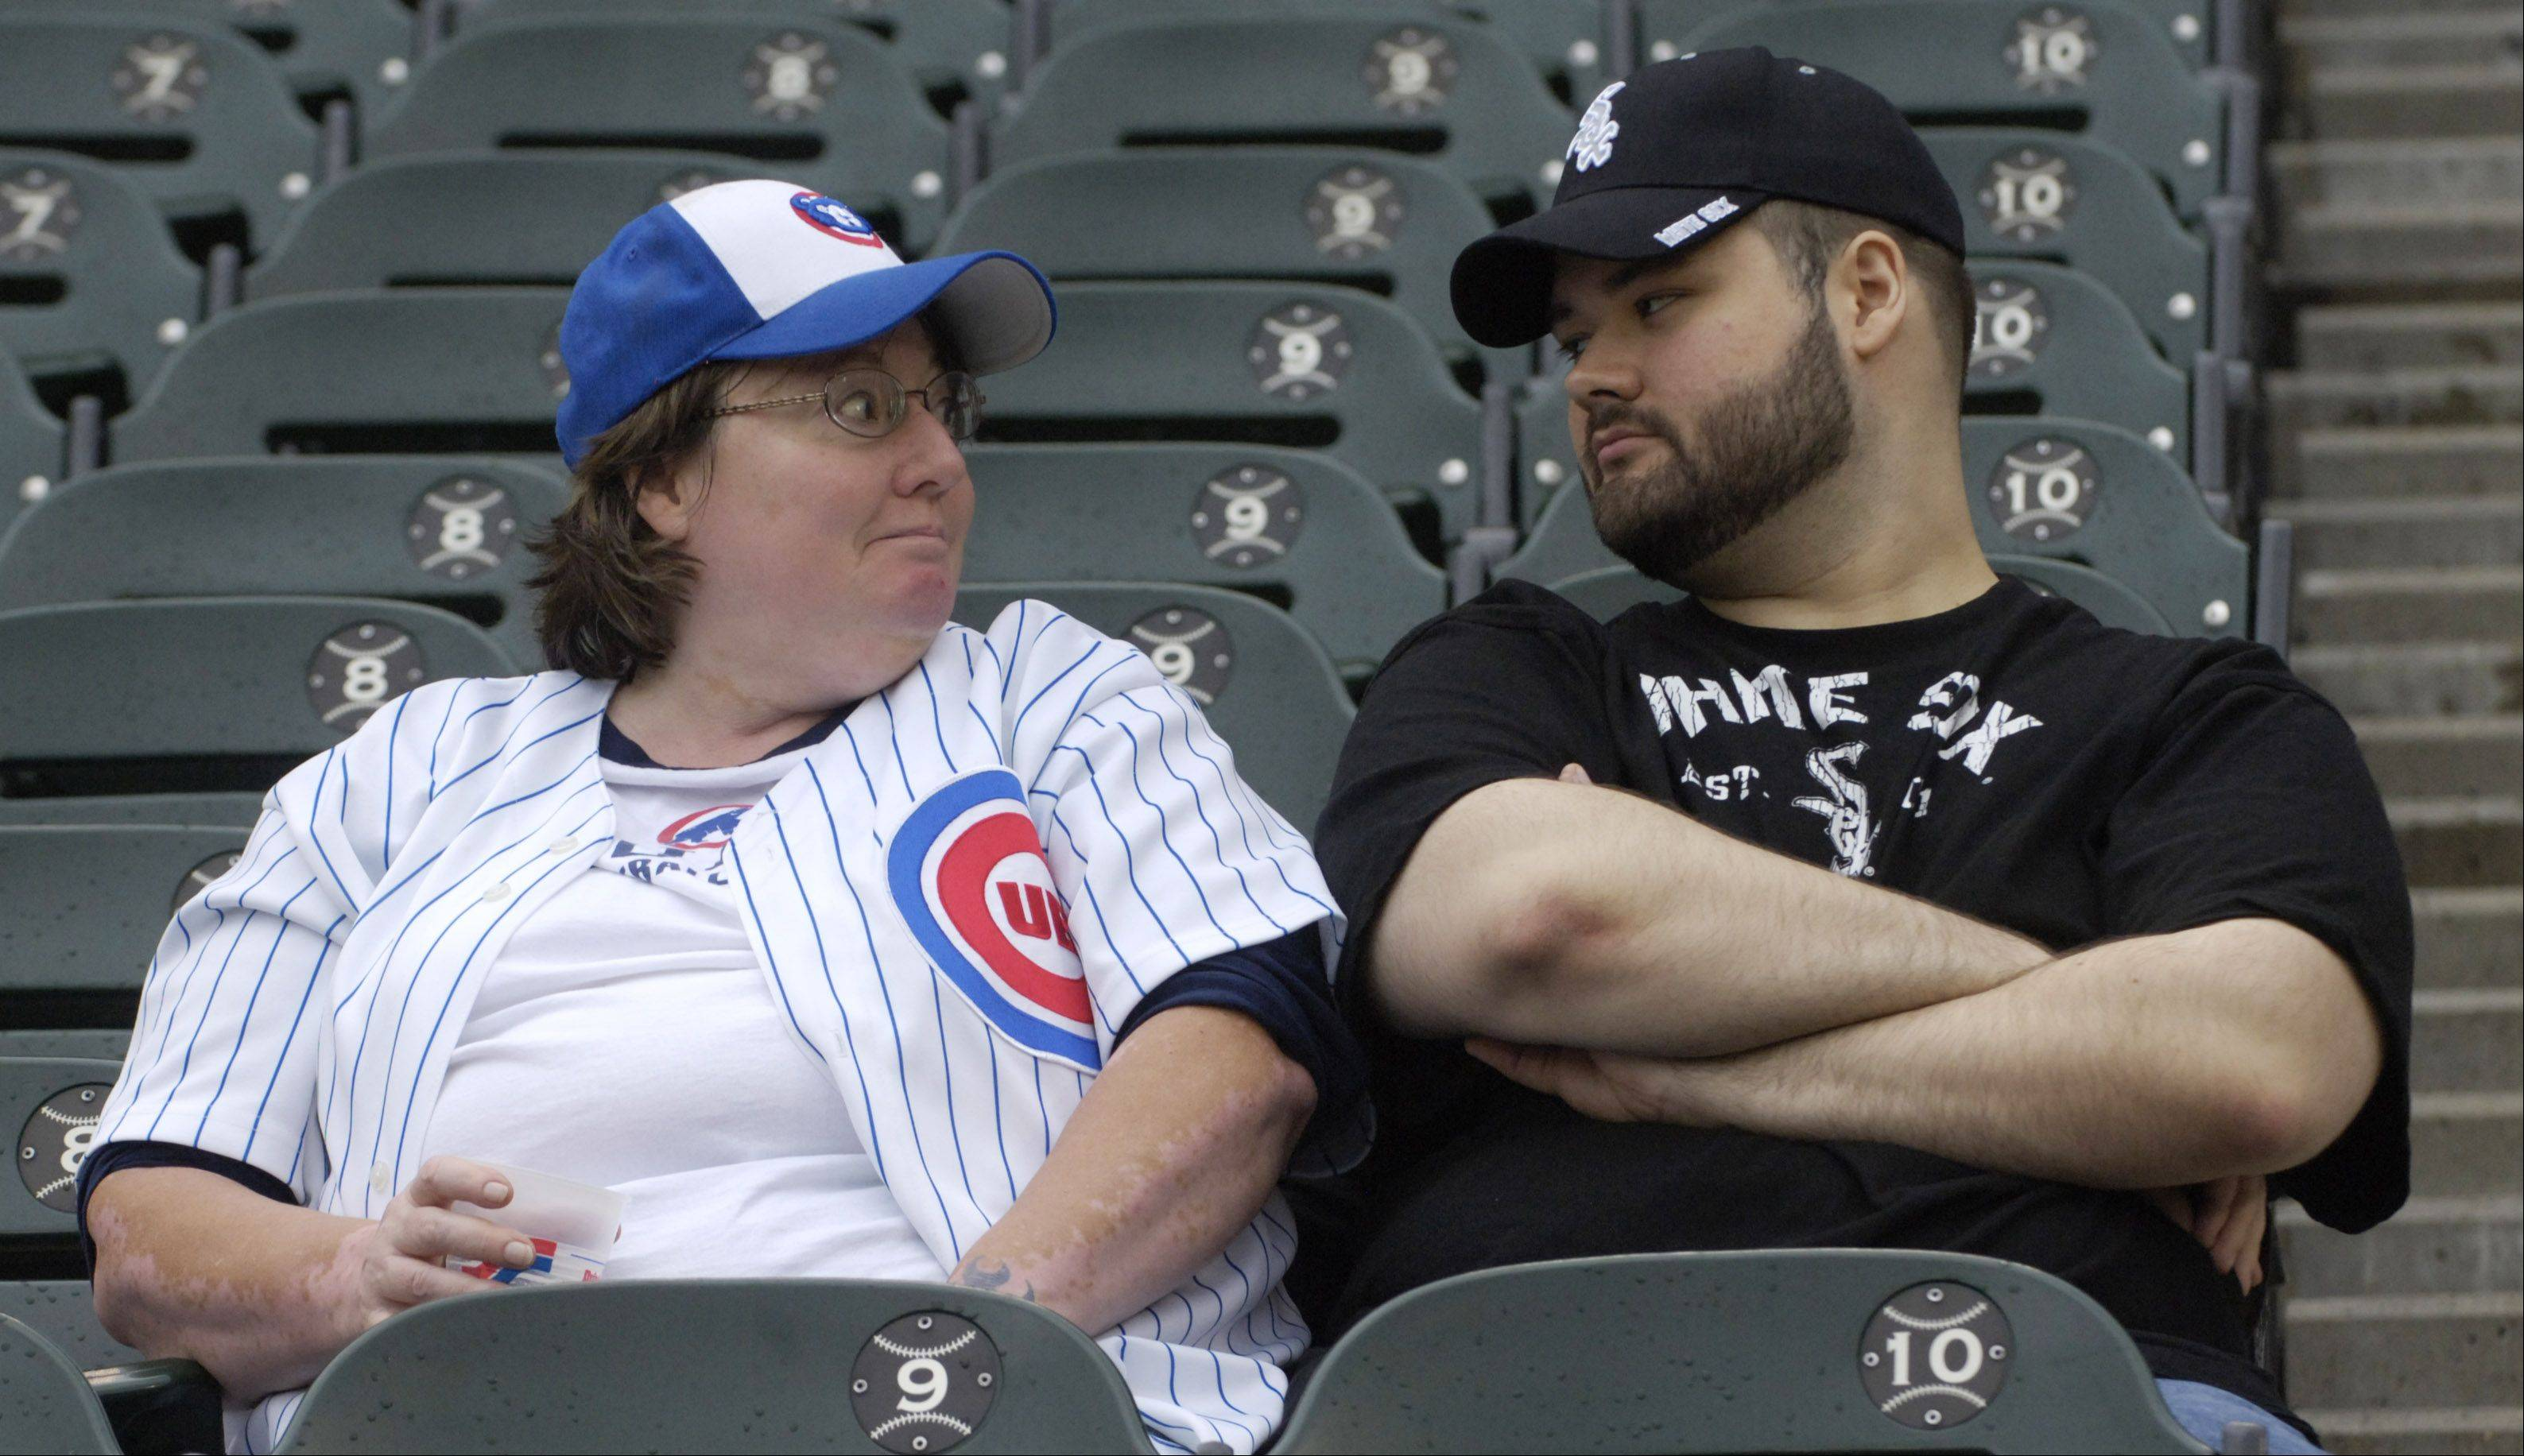 It's another round of the city series for Cubs and White Sox fans, and this time it's the way it always should be: weekend games during the day. These two got to U.S. Cellular Field early last week, and that's good advice for this weekend's games at Wrigley Field.